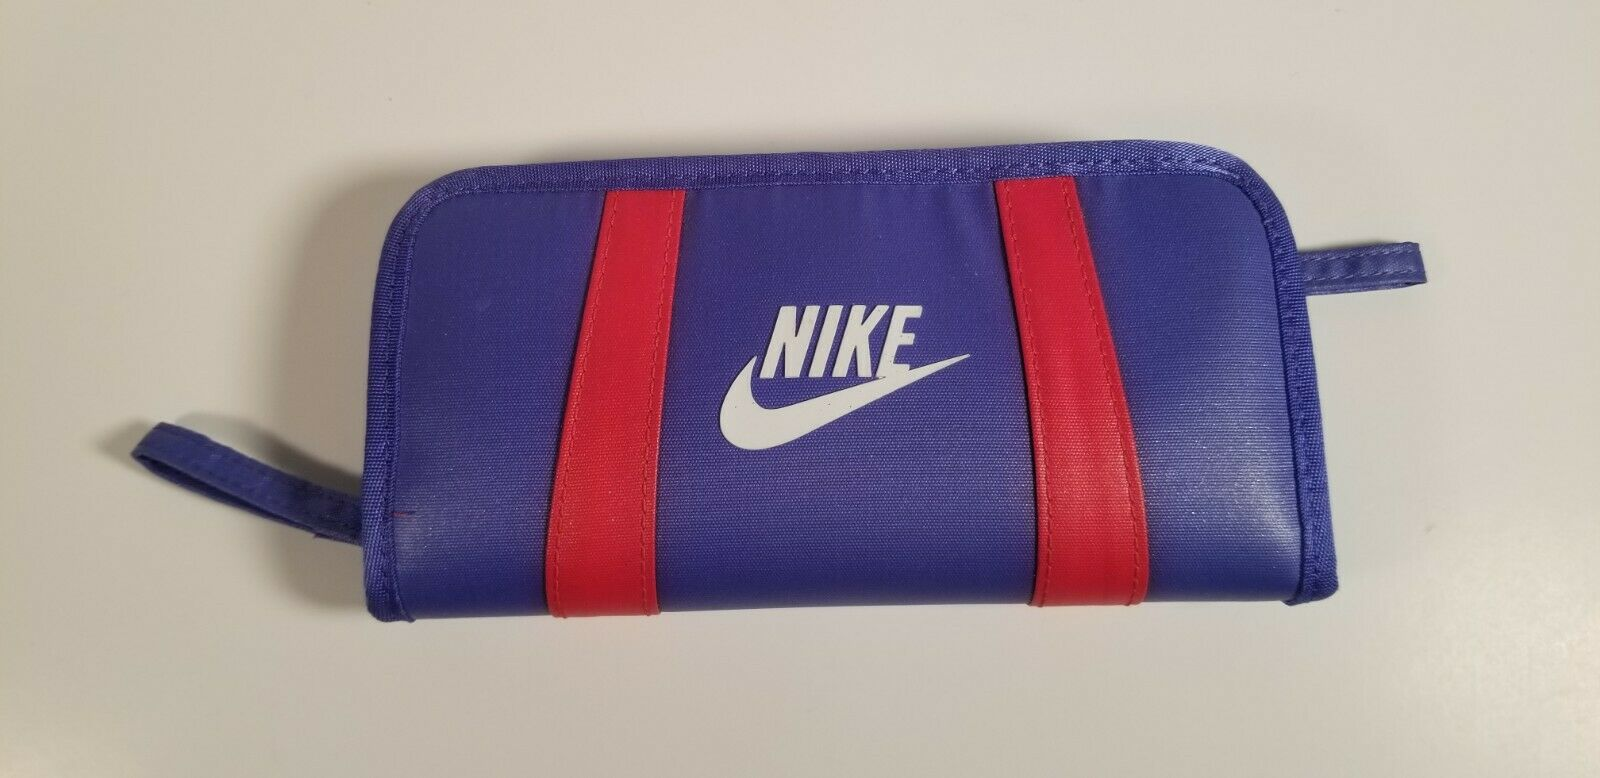 RARE COLOR NIKE WOMEN'S BI-FOLD ZIP WALLET FOR CREDIT CARDS COINS AND MORE